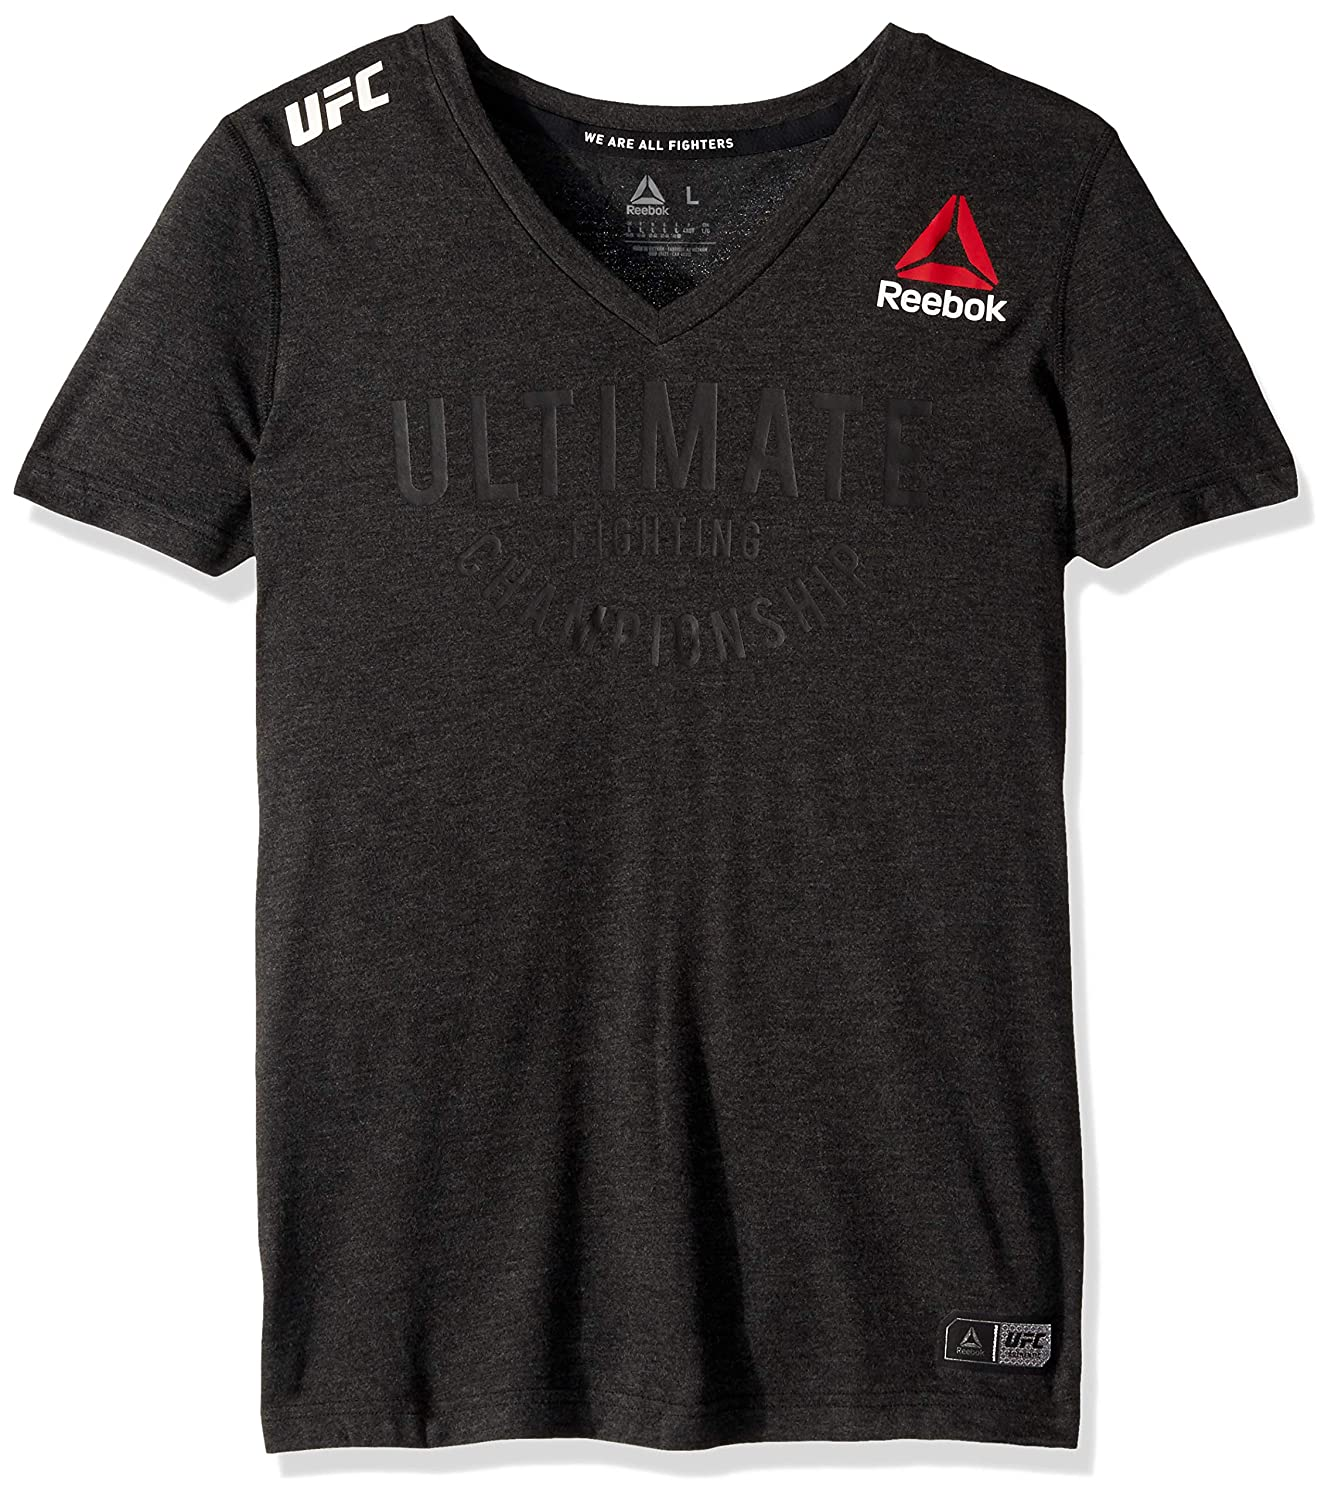 c342a521597ec Amazon.com : Reebok UFC Womens Ultimate Jersey : Clothing